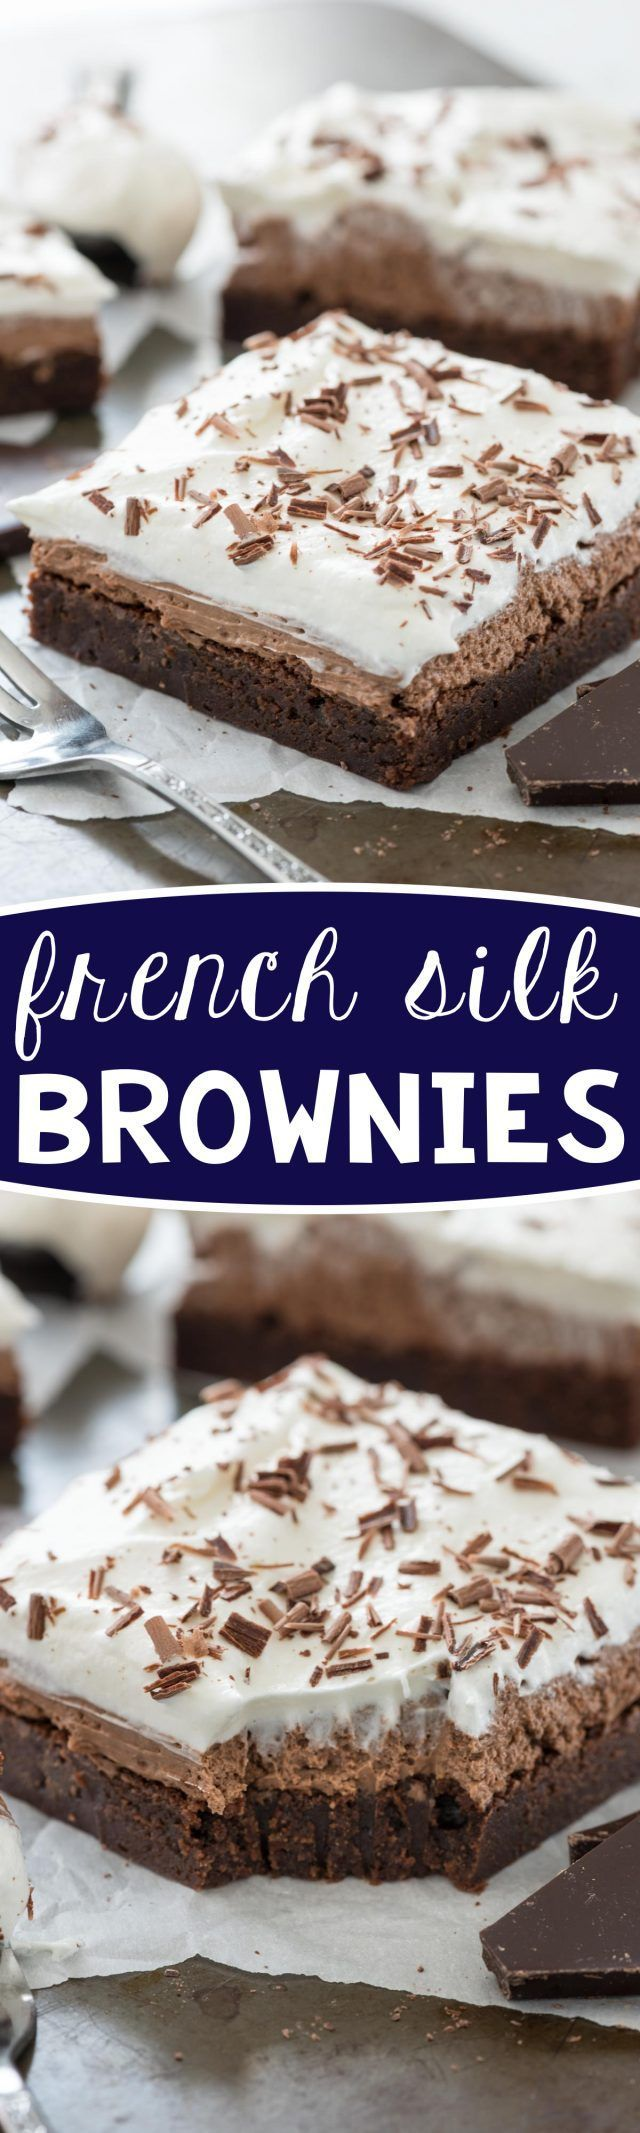 French Silk Brownies Recipe - make this an easy recipe by using a box brownie mix! The french silk recipe is egg-free. Everyone loved this recipe - it's EPIC!